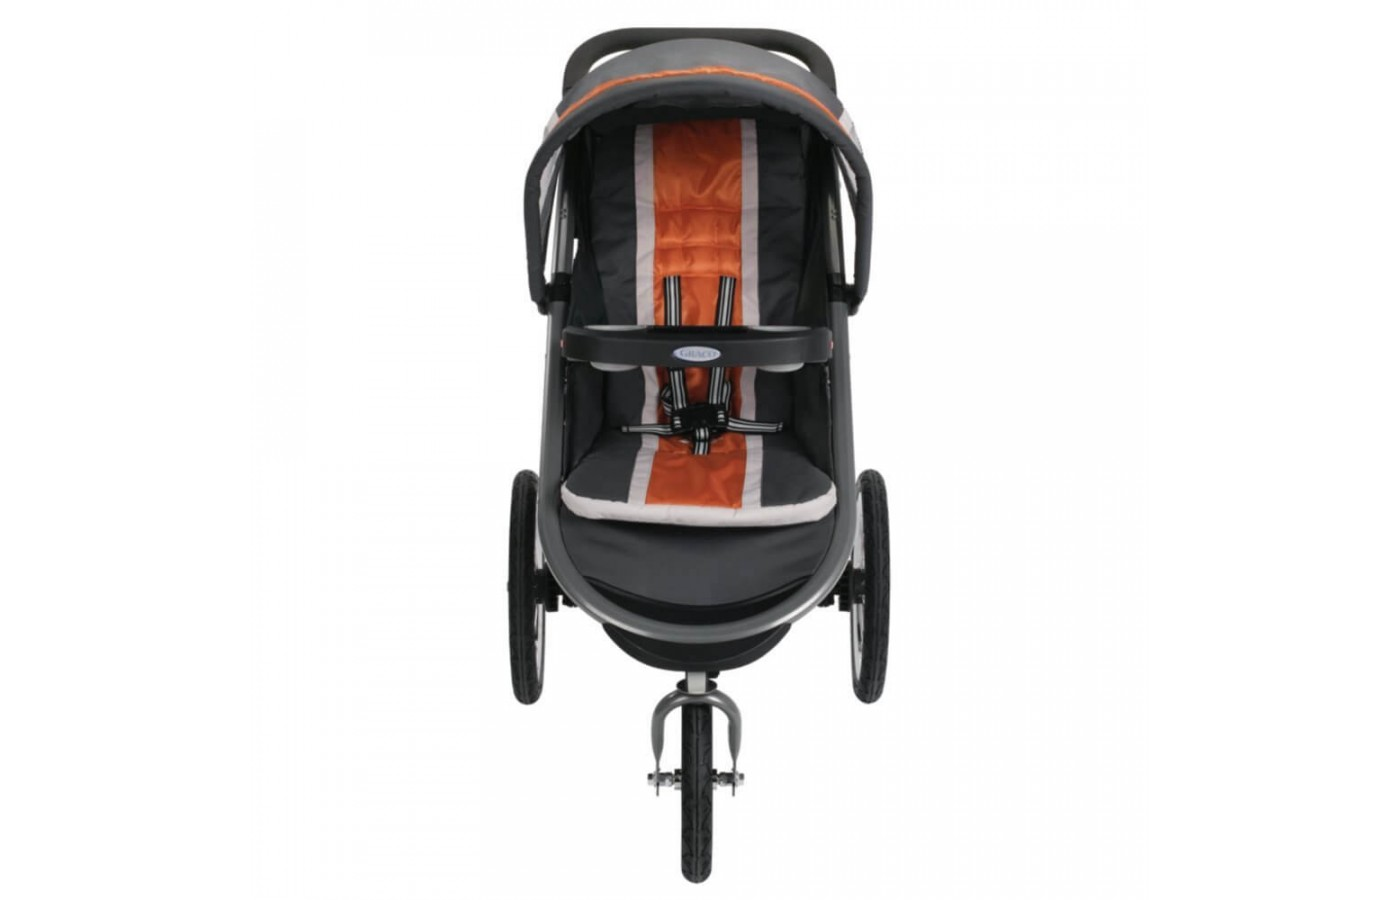 This stroller comes in two colors: Tangerine and Pierce